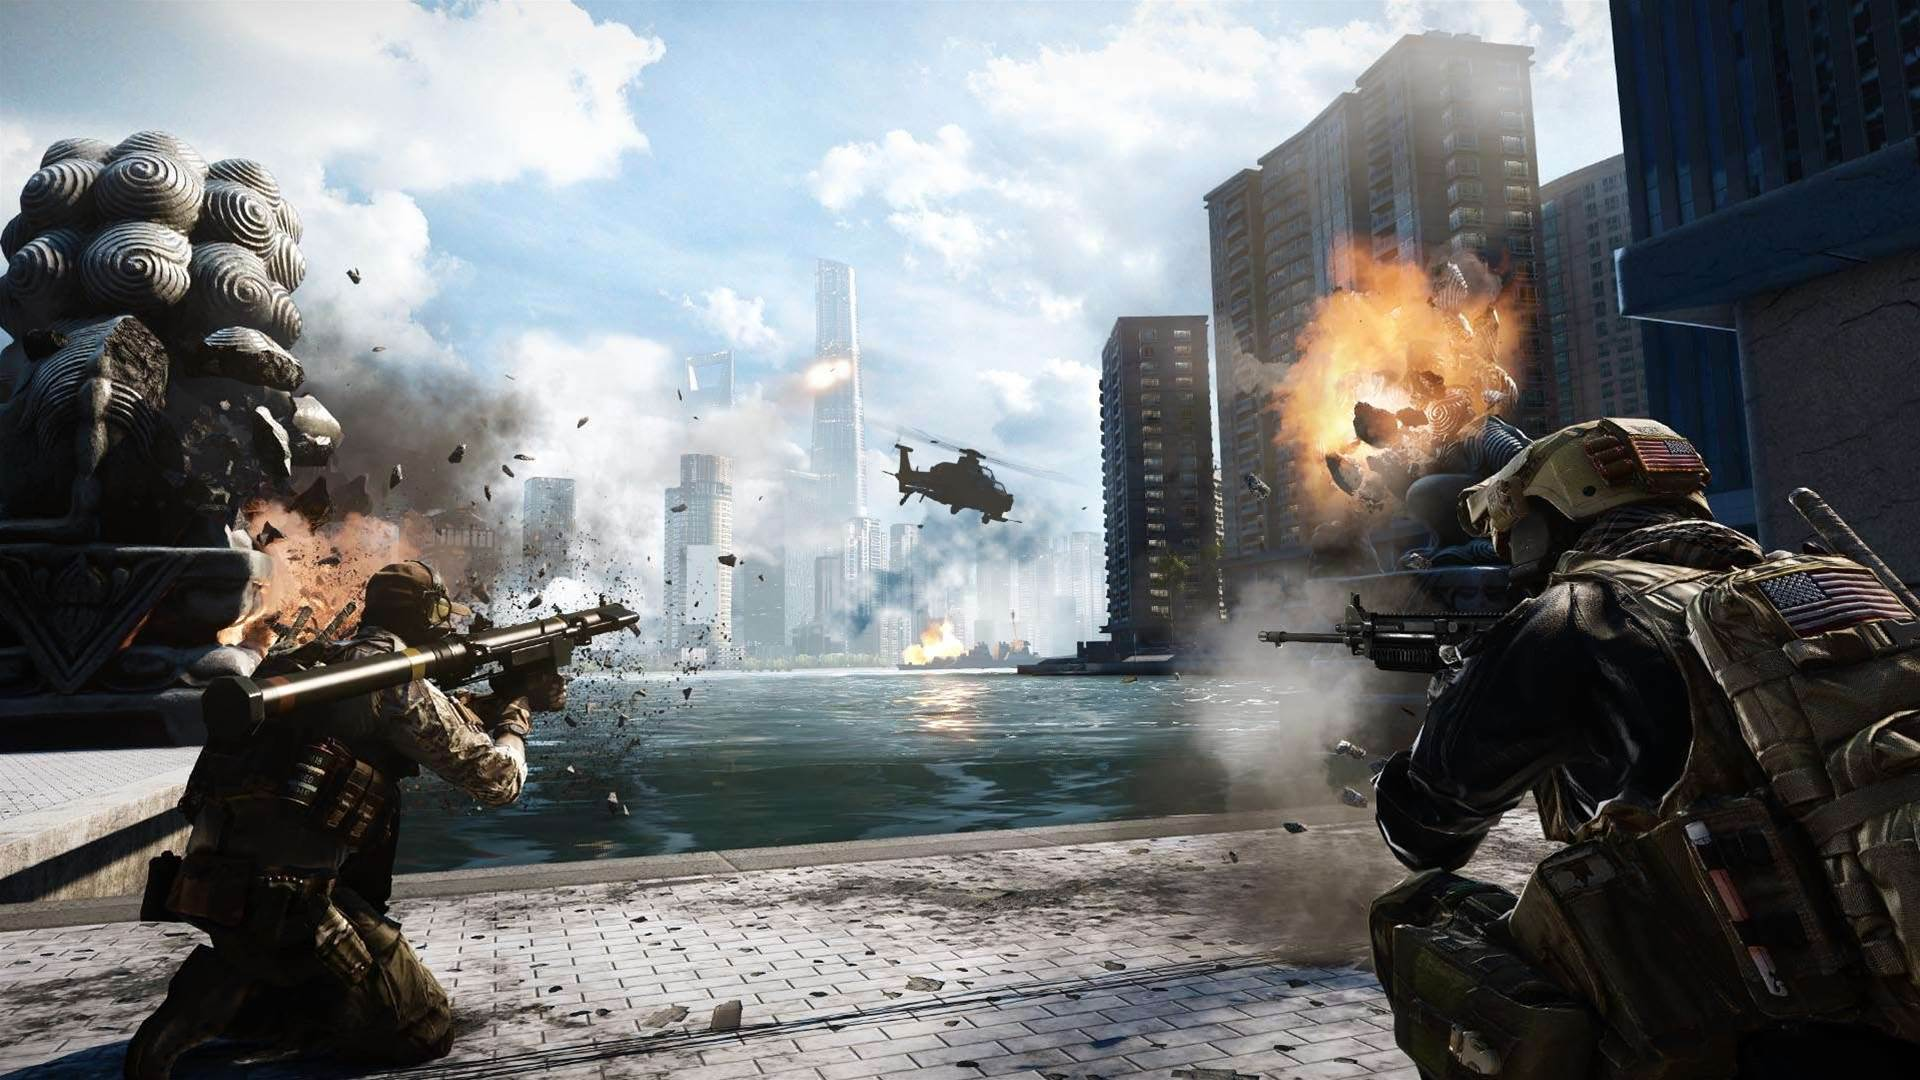 Review: Battlefield 4